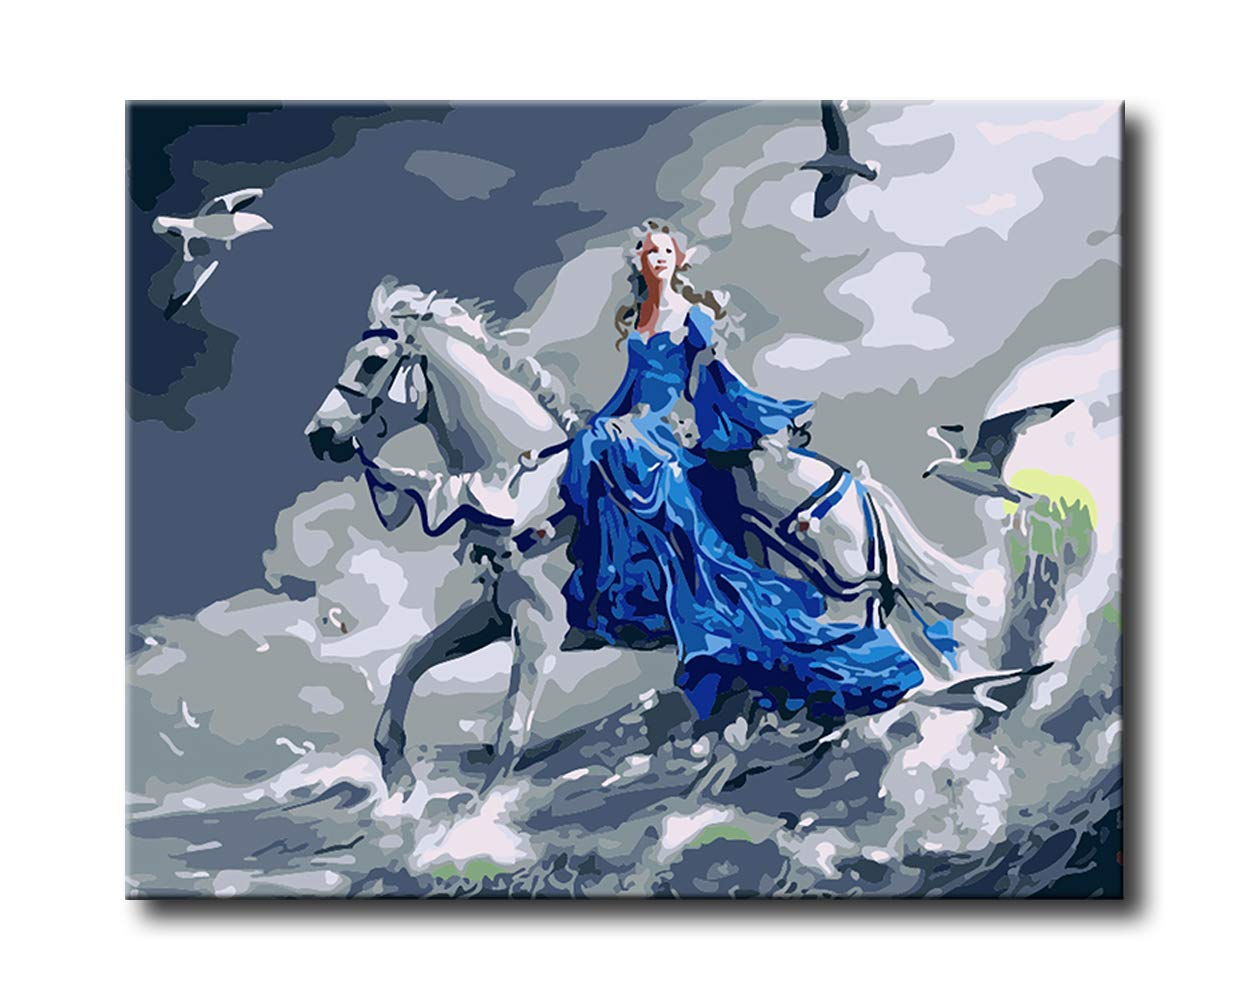 Shukqueen DIY Paint by Numbers for Adults DIY Oil Painting Kit for Kids Beginner - Blue Princess 20x26 Inch (Without Frame)